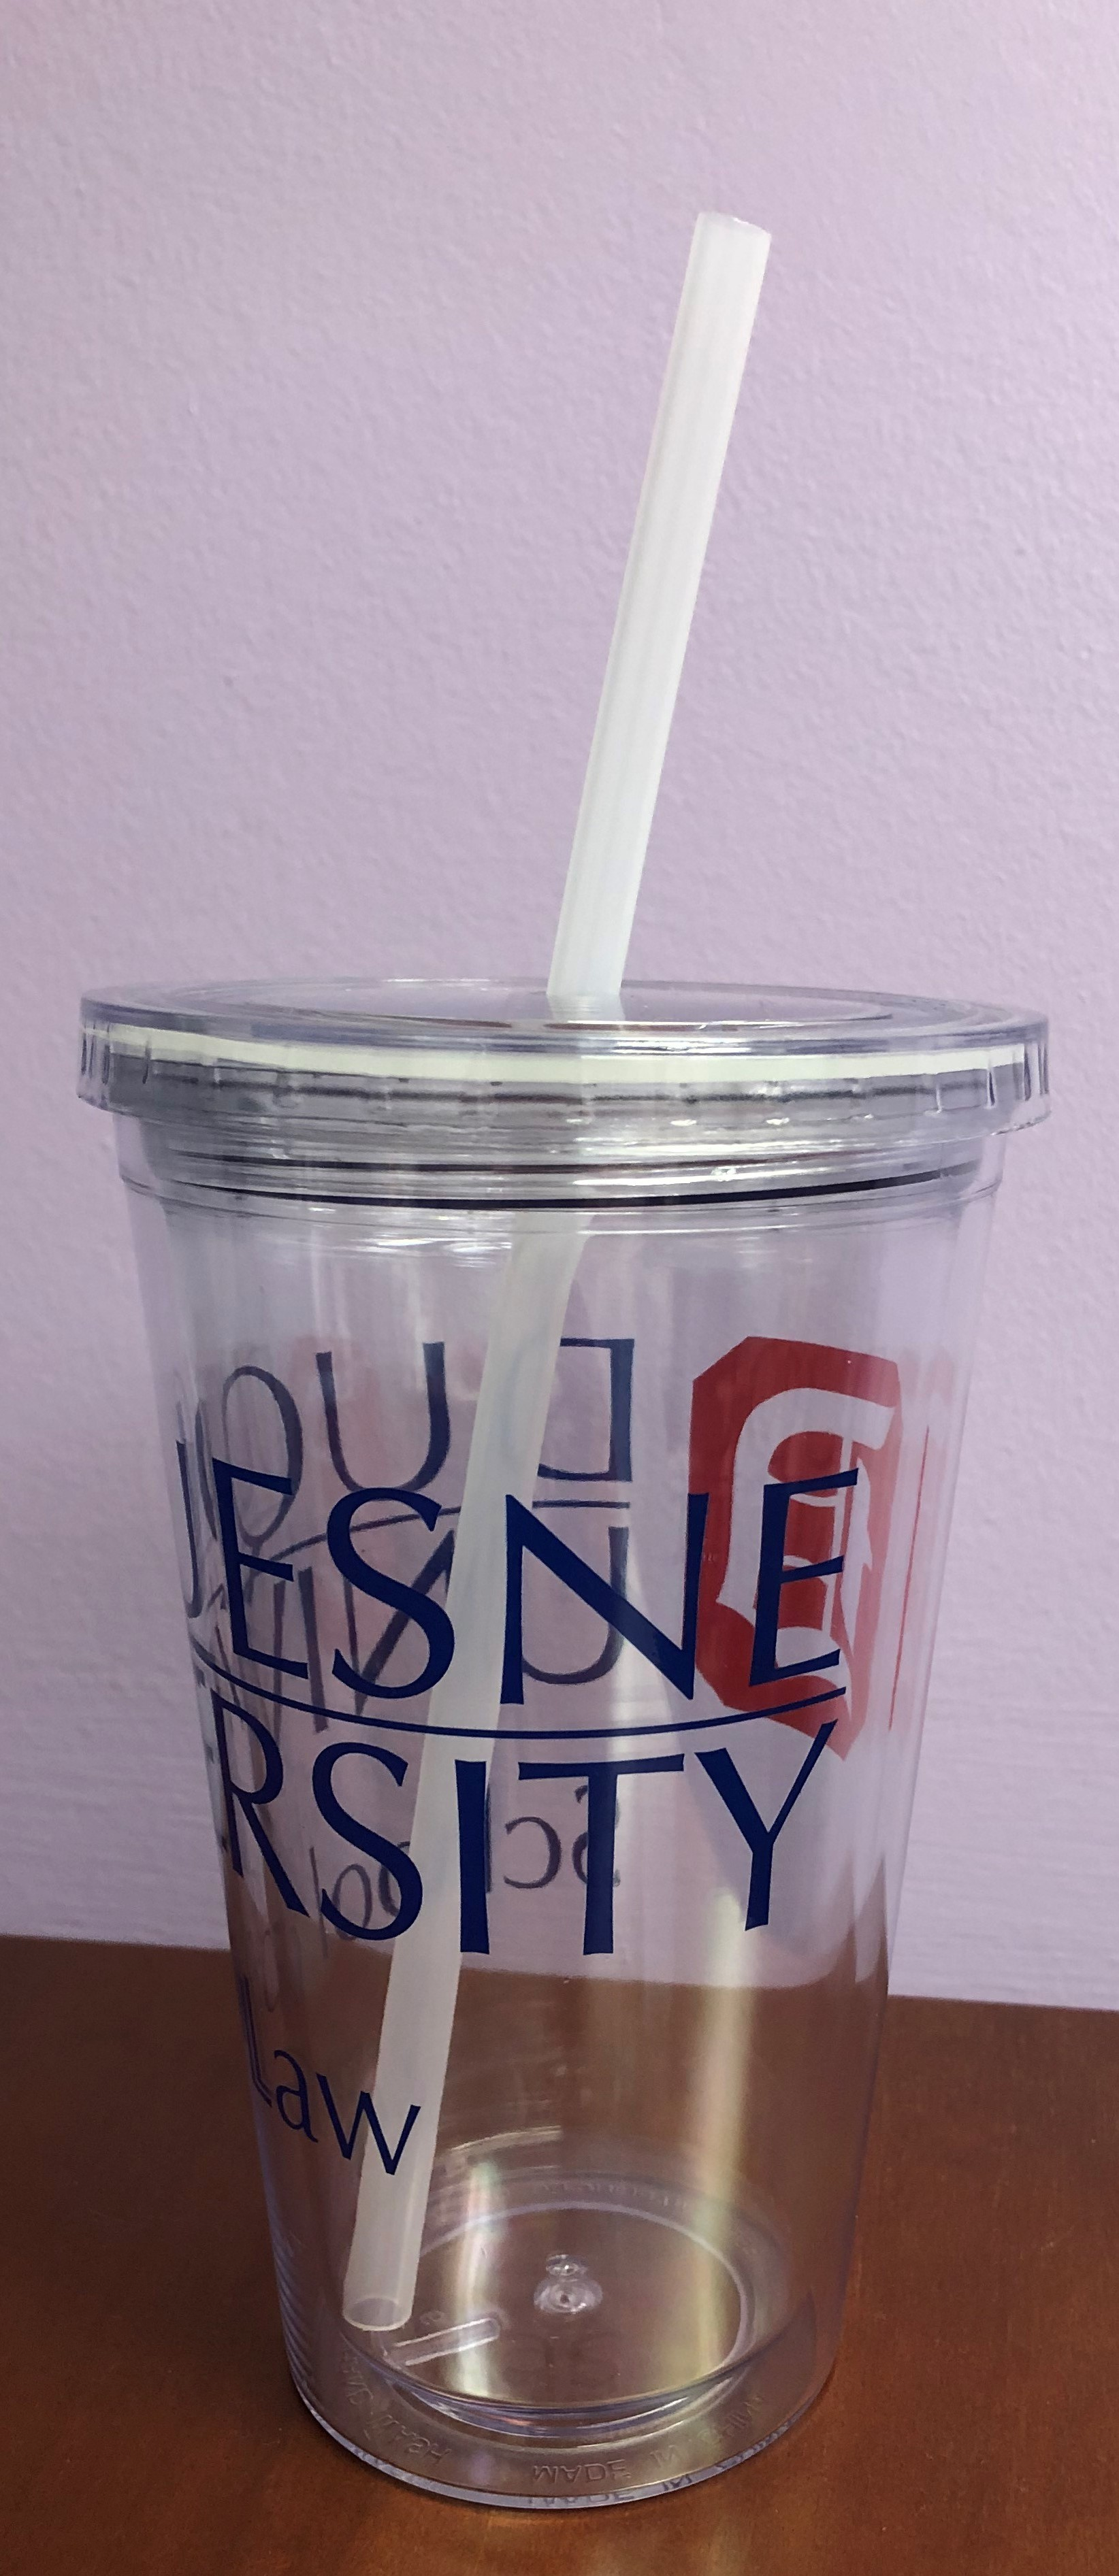 photos of the straw cup